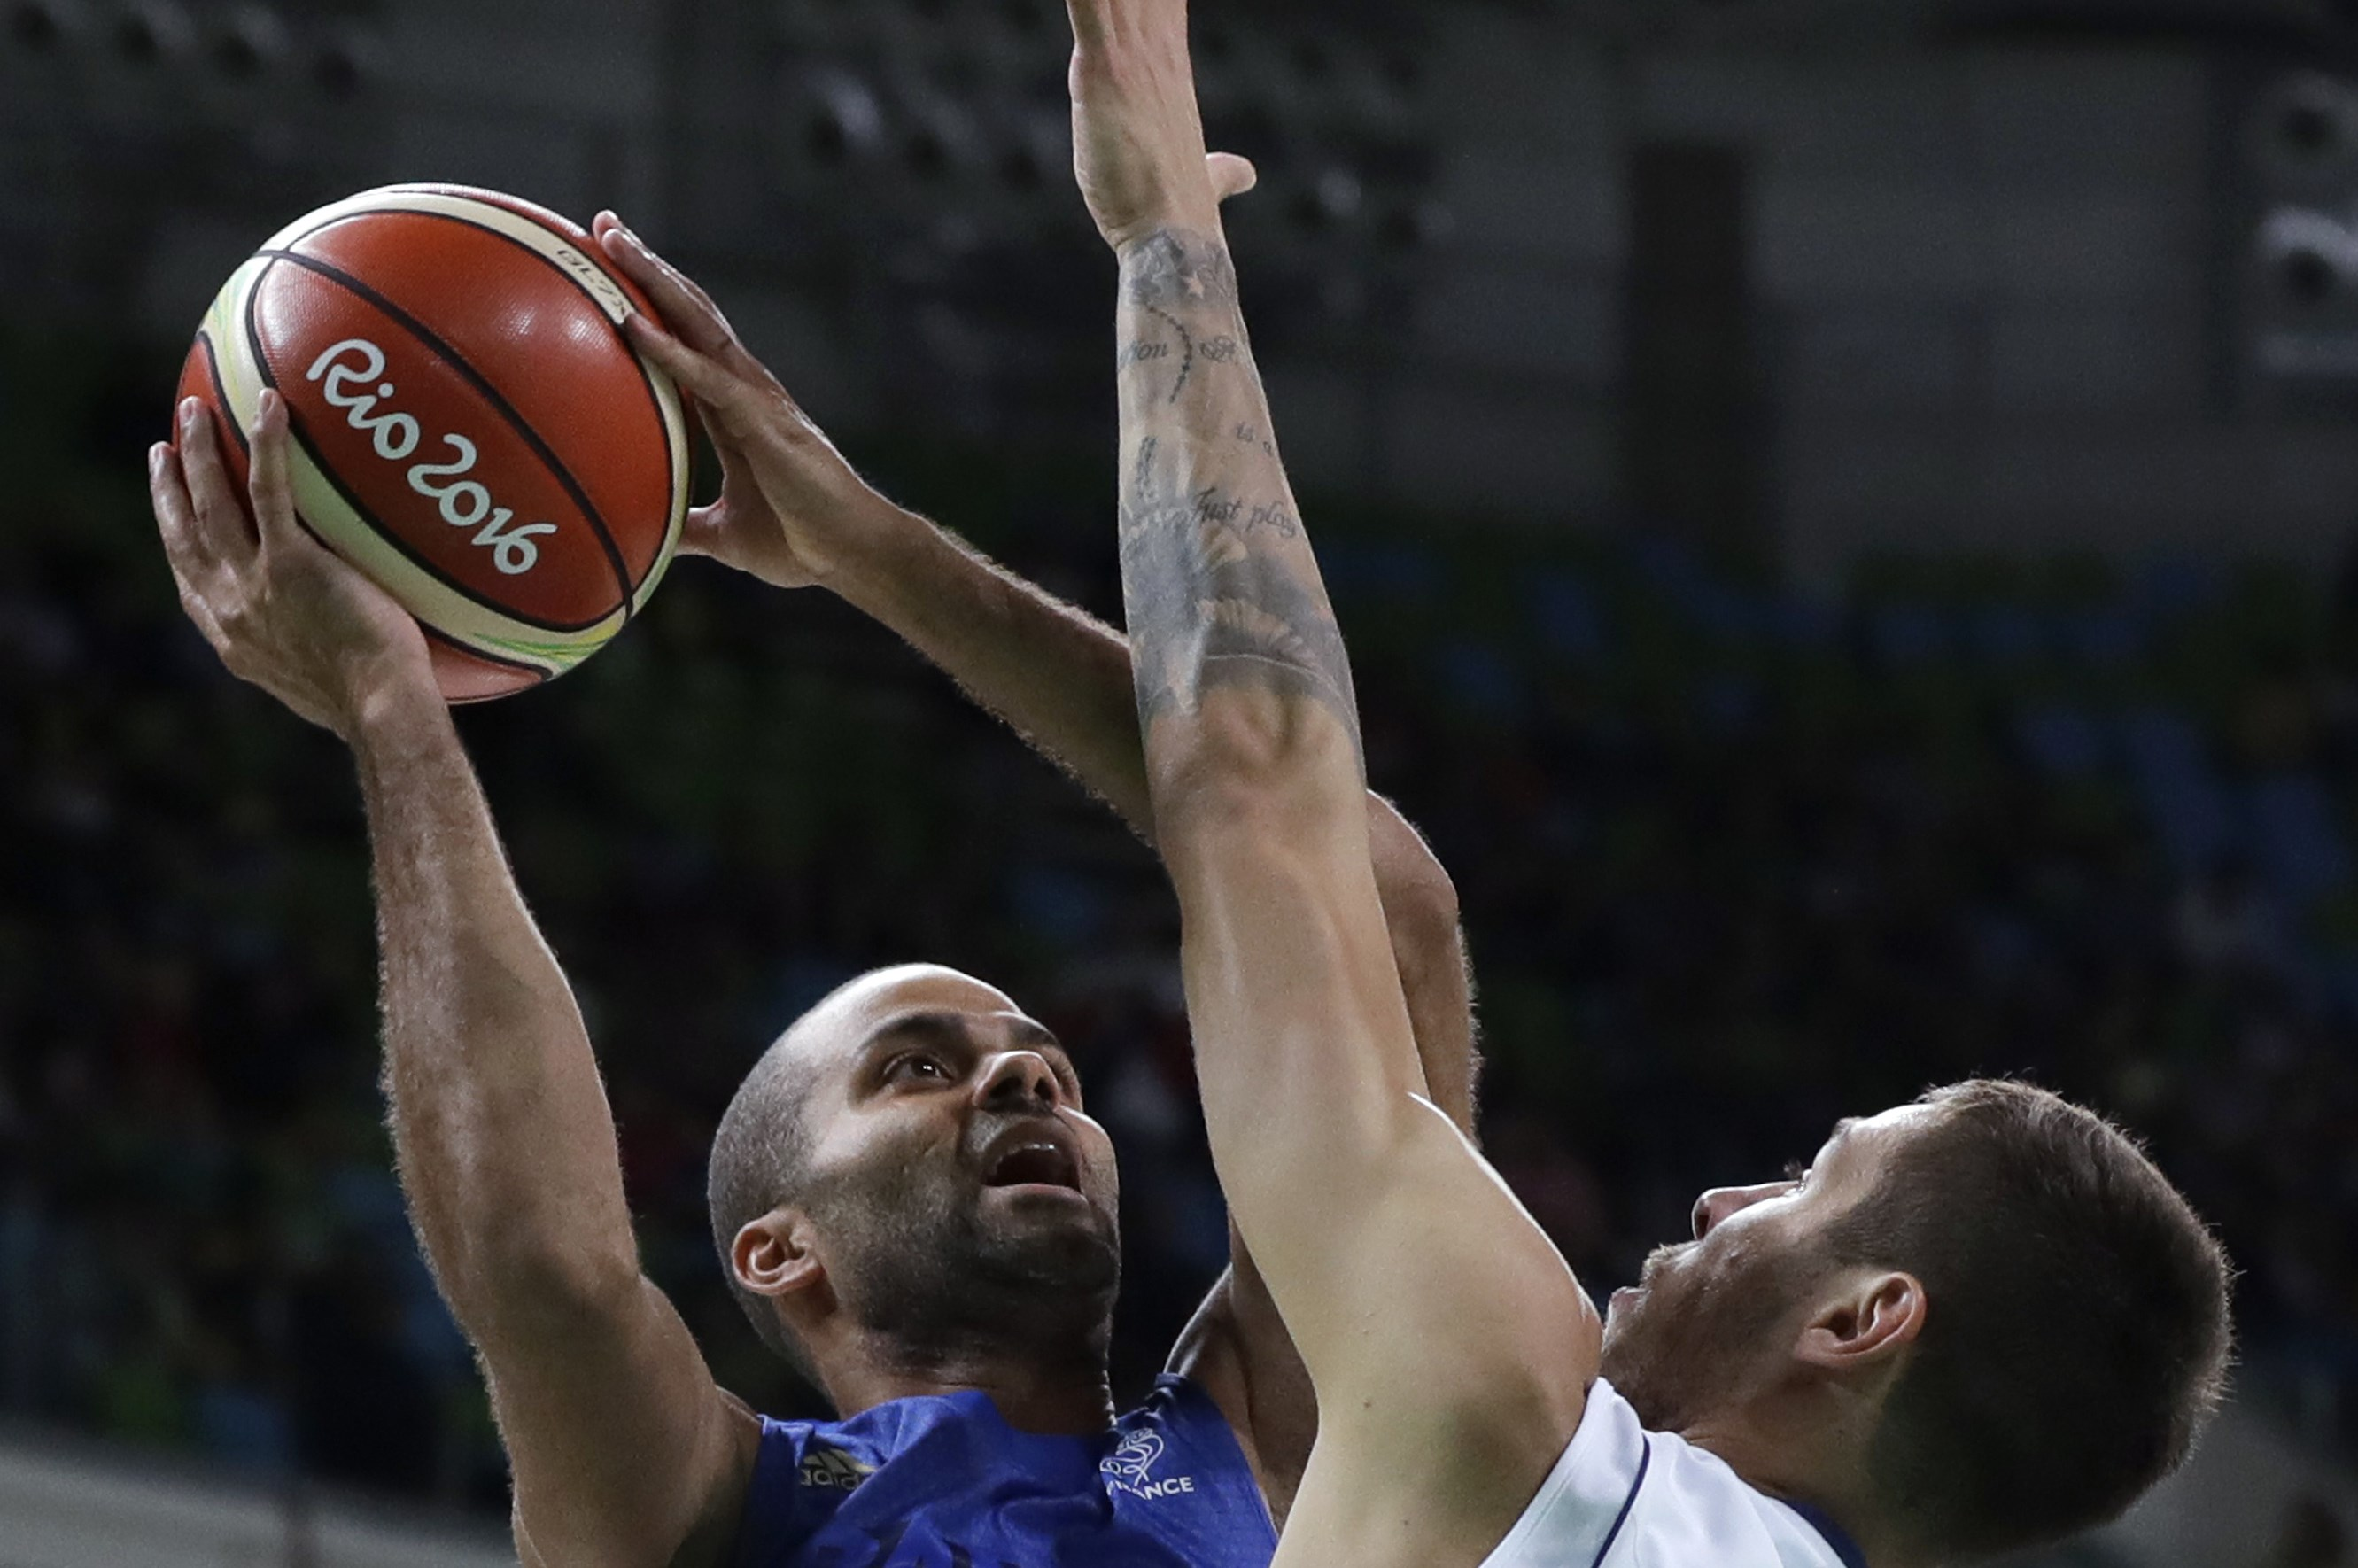 France's Tony Parker (9) shoots over Serbia's Stefan Jovic (24) during a basketball game at the 2016 Summer Olympics in Rio de Janeiro, Brazil, Wednesday, Aug. 10, 2016. (AP Photo/Charlie Neibergall)